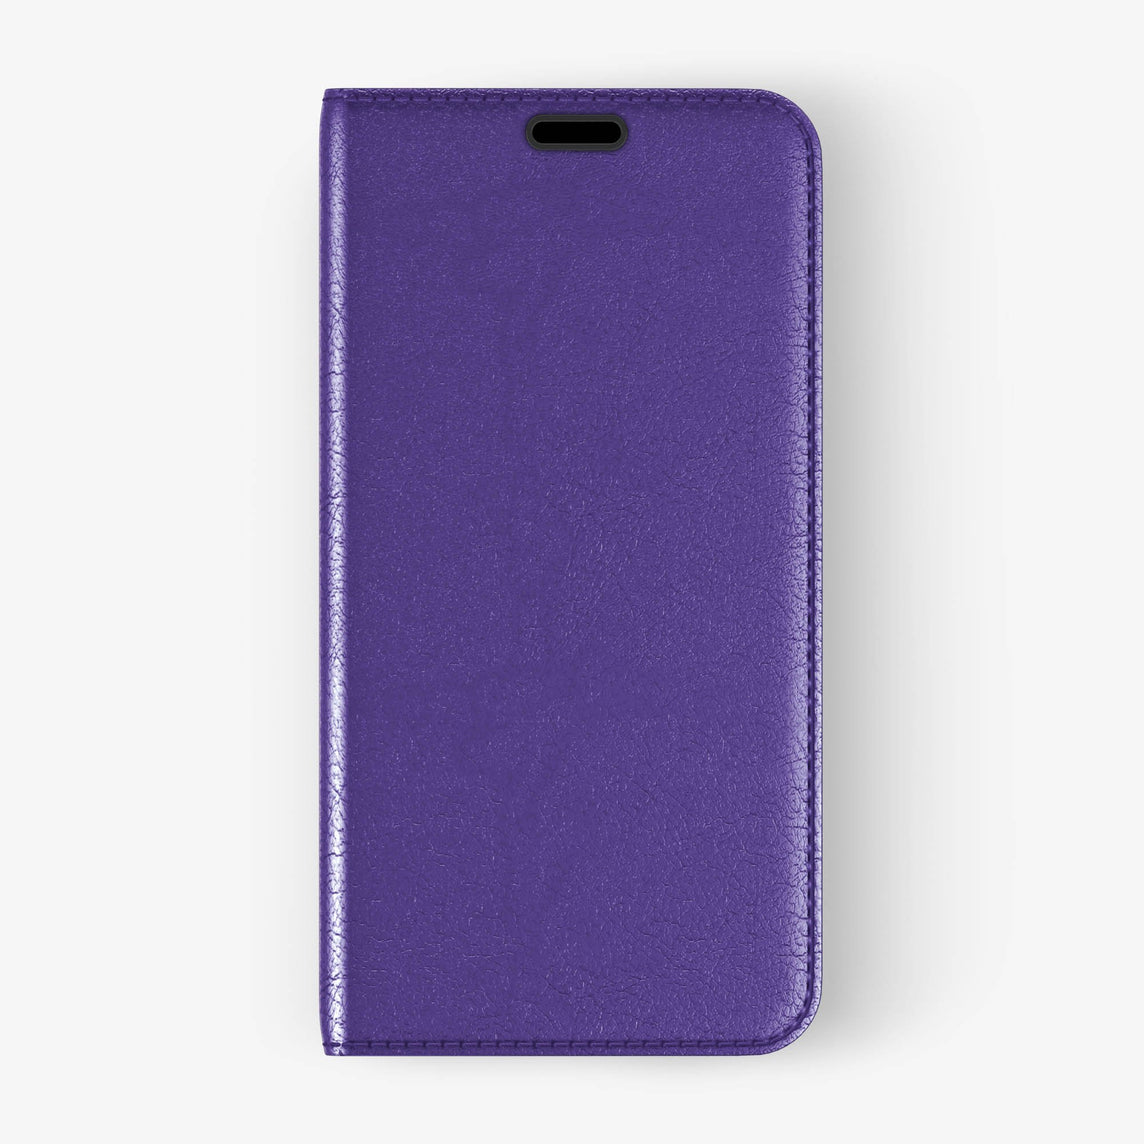 Calfskin Folio Case iPhone X/Xs | Violet - Black